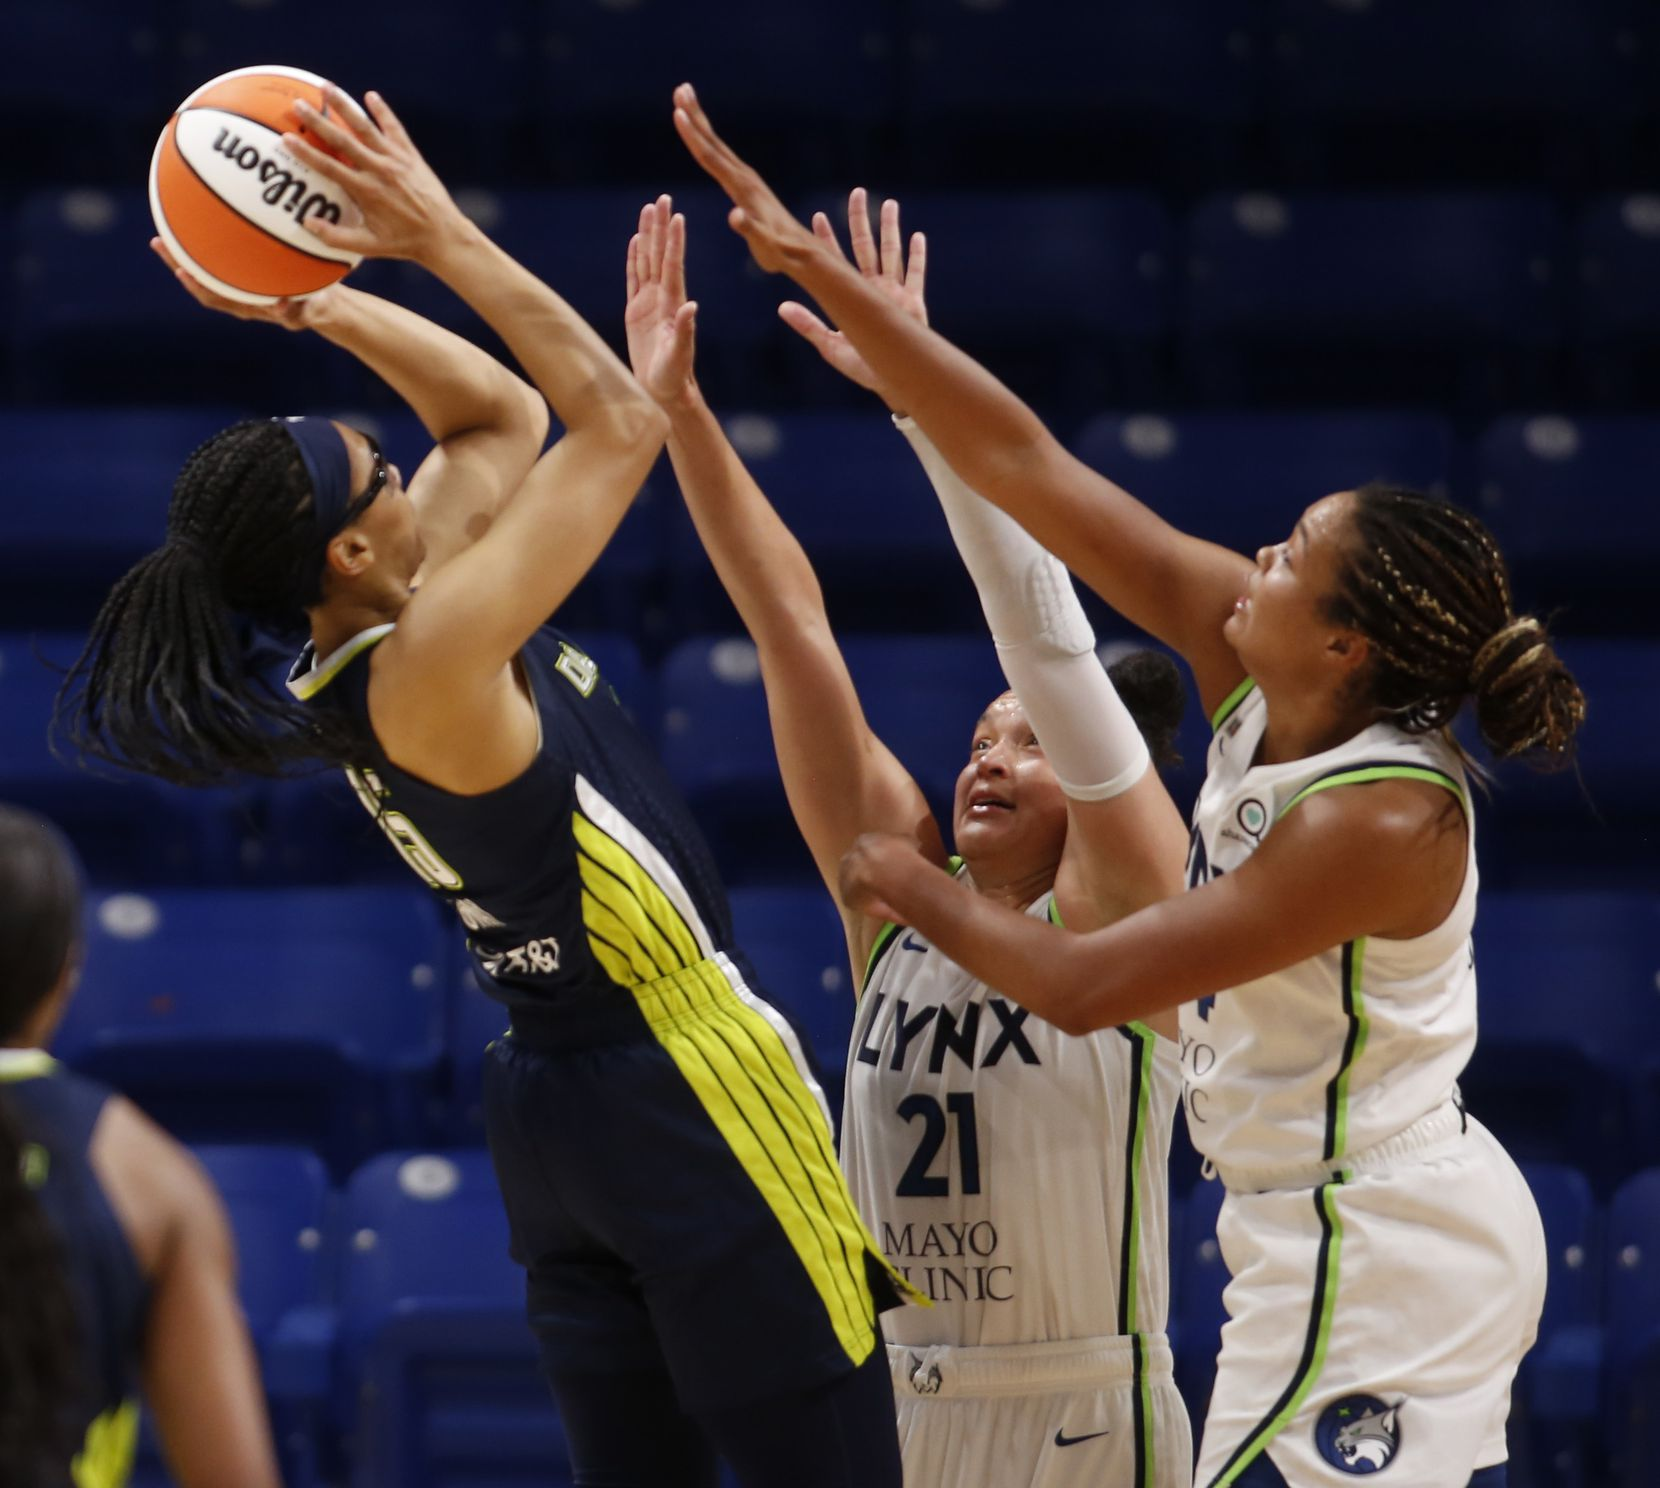 Dallas Wings guard Allisha Gray (15) goes up for a shot as she is double teamed by Minnesota Lynx guard Kayla McBride (21) and forward Napheesa Collier (24) during first quarter action. The two teams played their WNBA game at College Park Center on the campus of the University of Arlington on June 17, 2021(Steve Hamm/ Special Contributor)